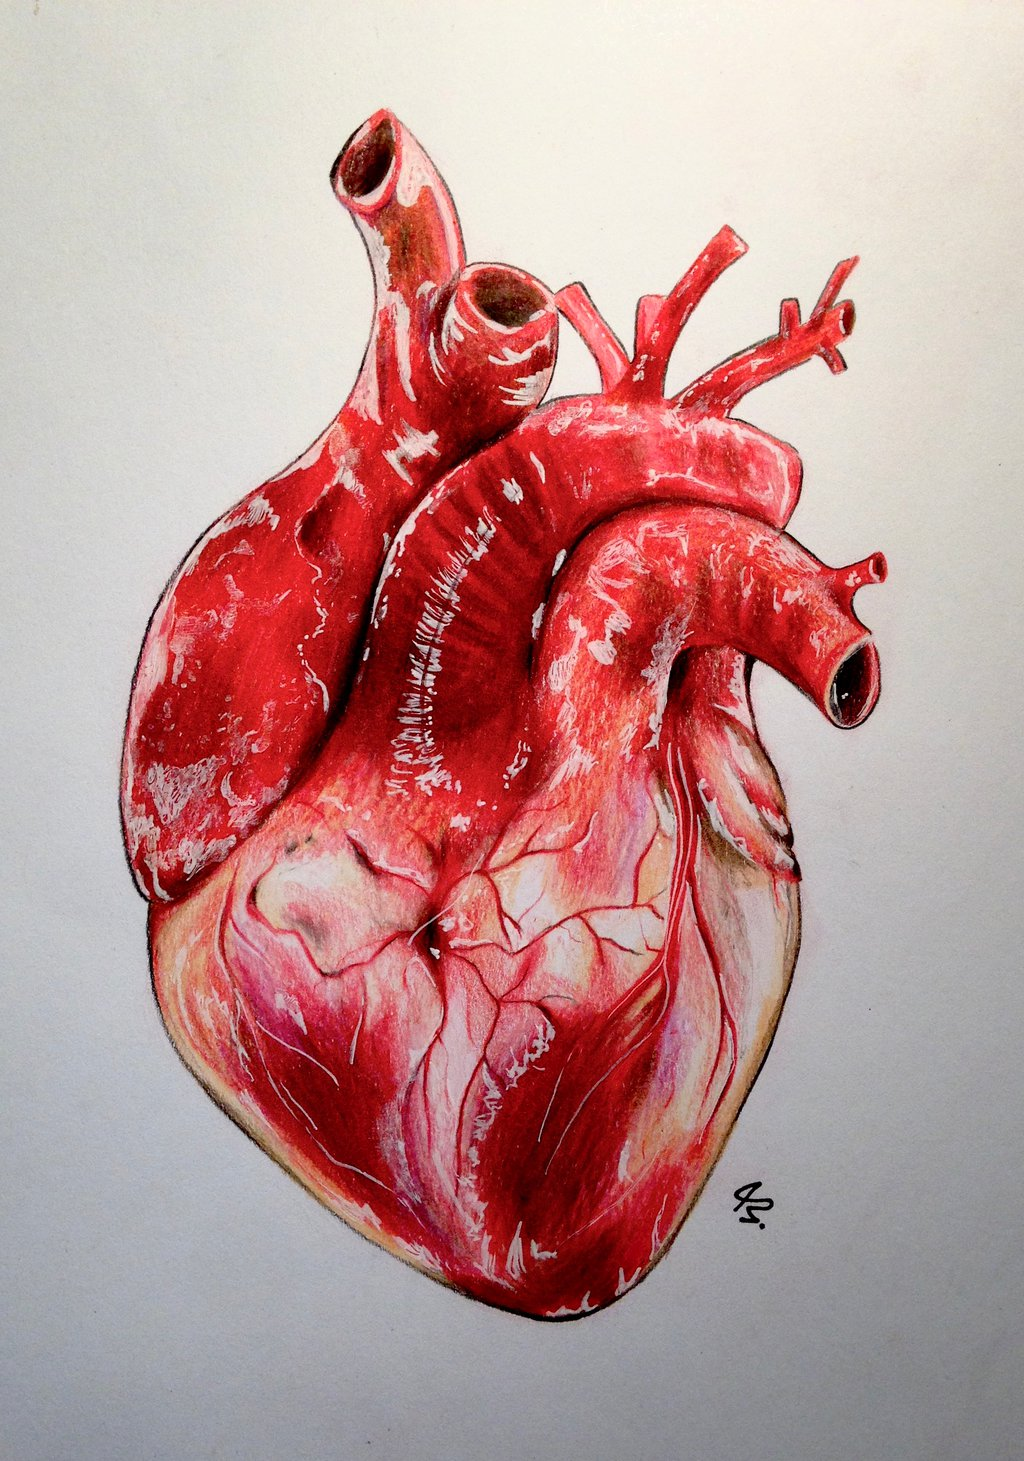 1024x1461 Realistic Human Heart By Lunacanan T H E A R T S